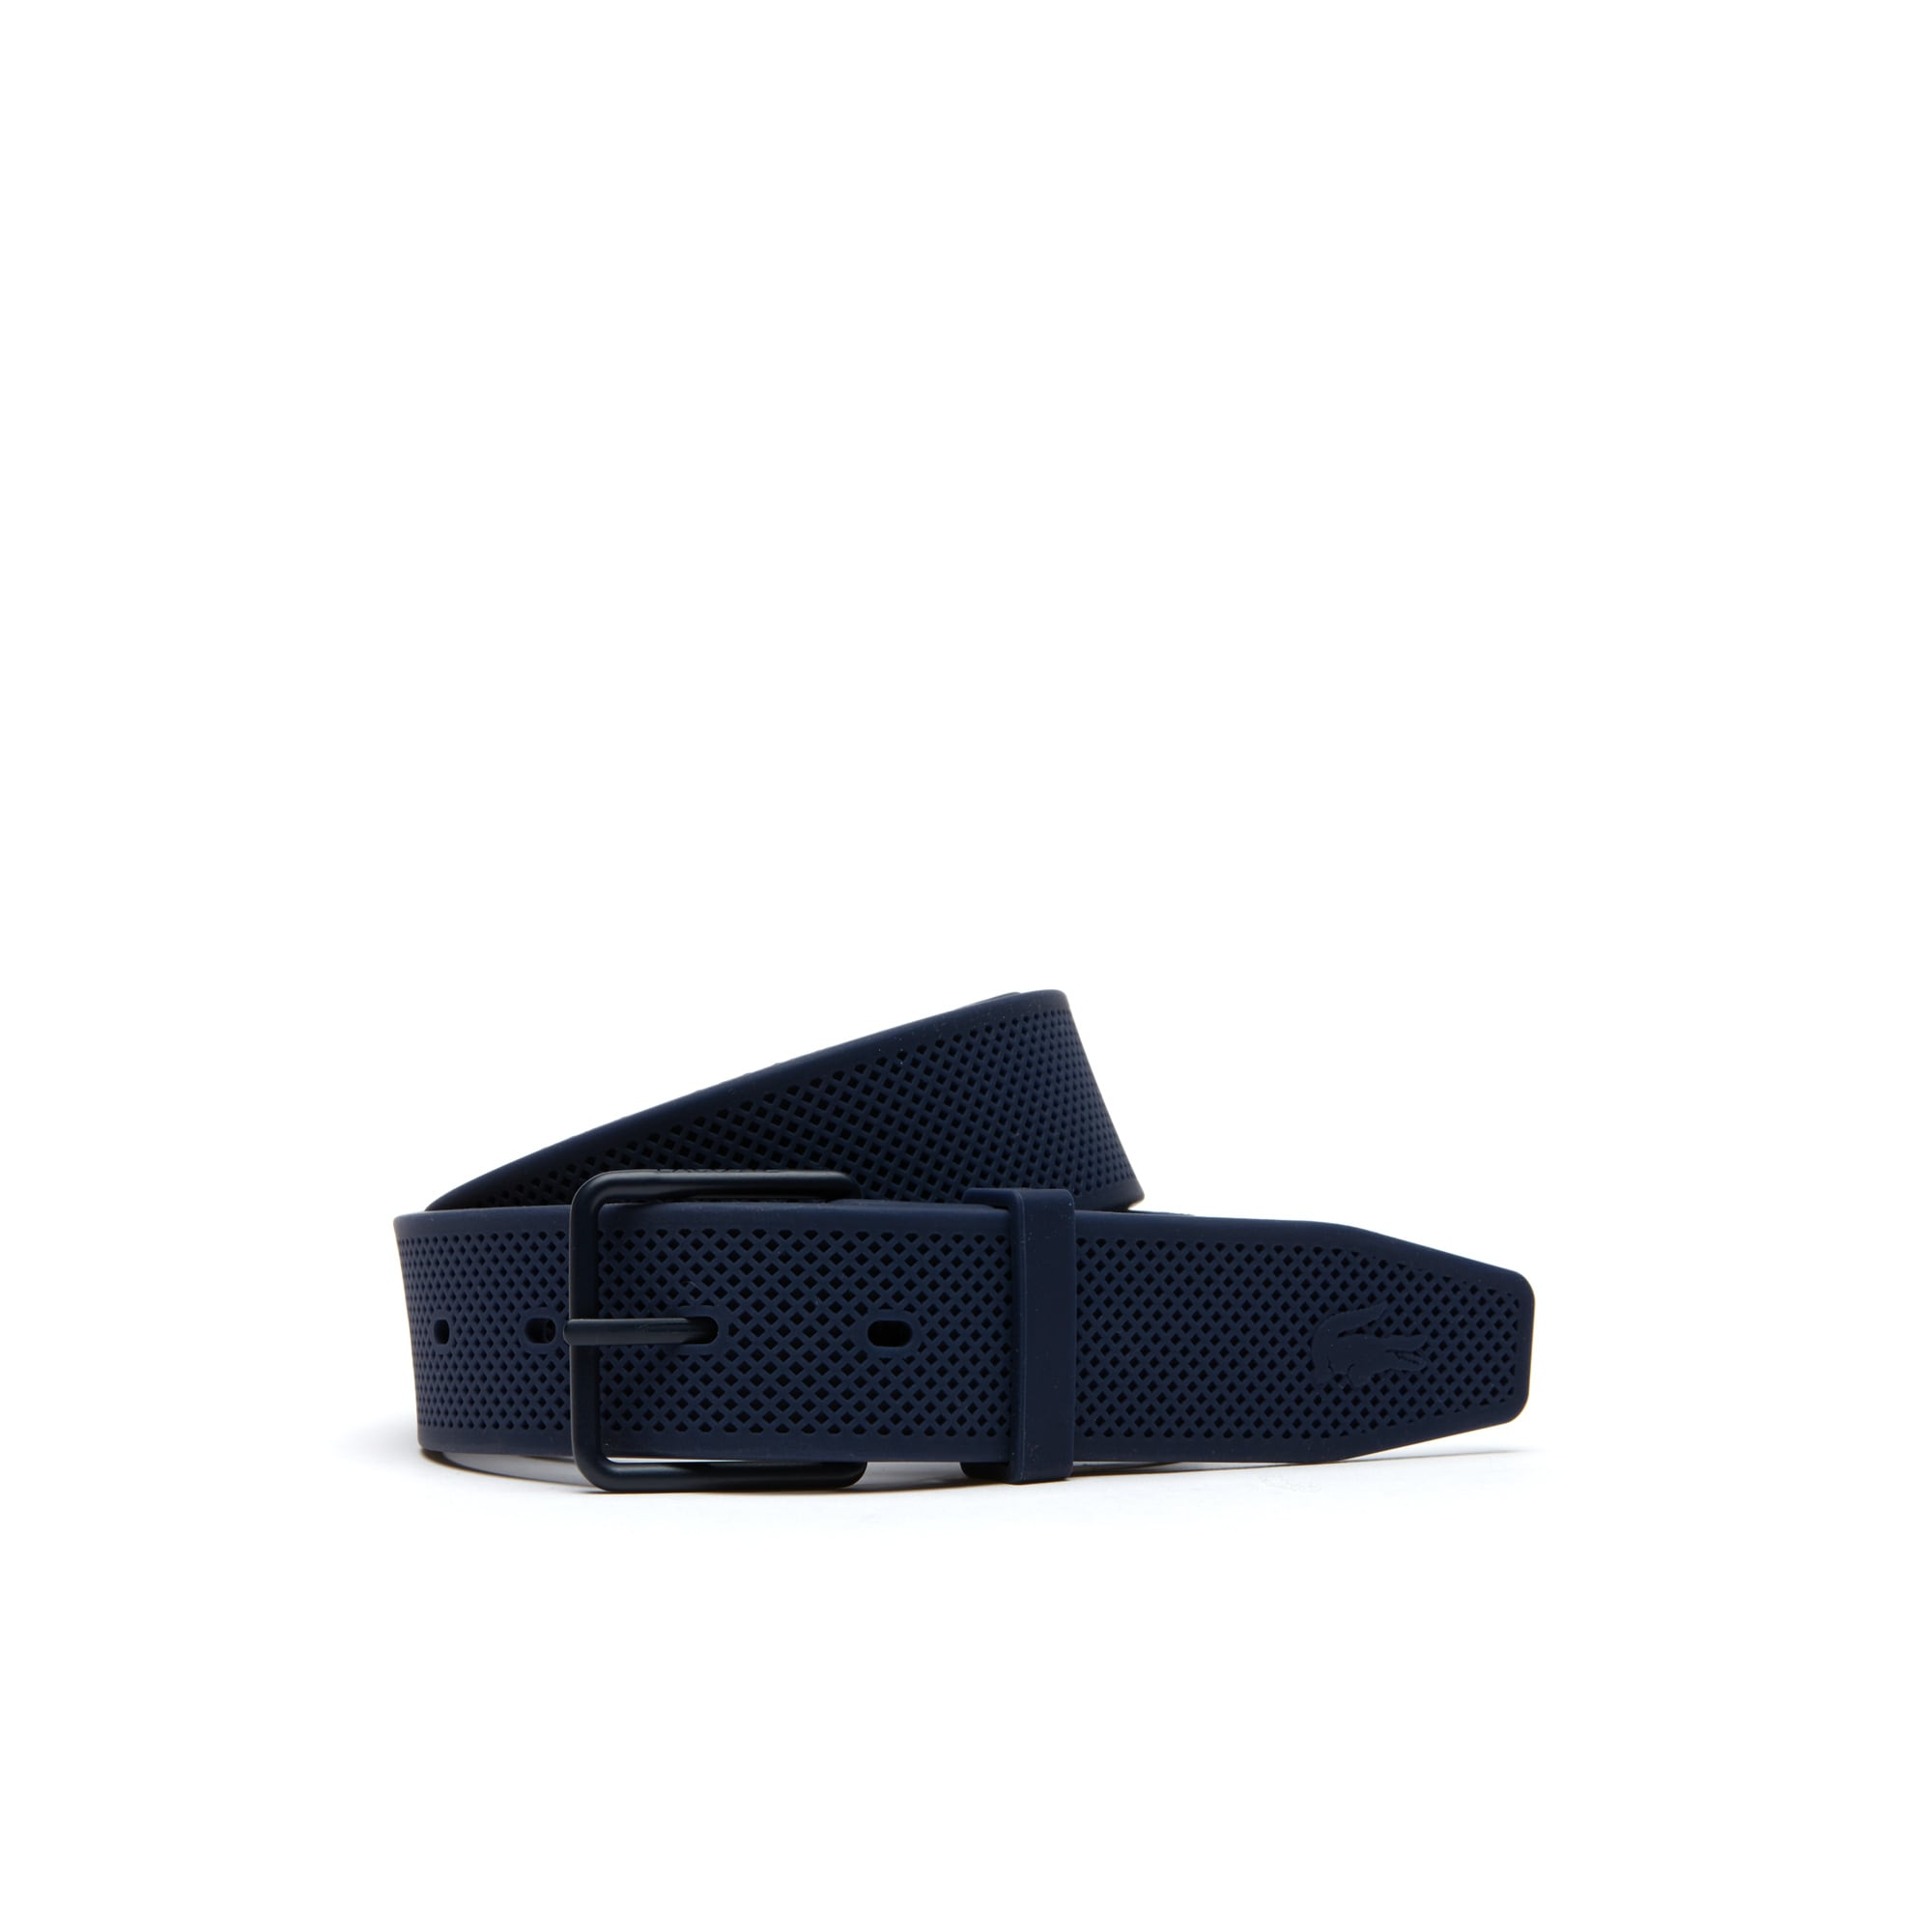 Men's Crisscross Silicon Belt With Lacoste Tongue Buckle